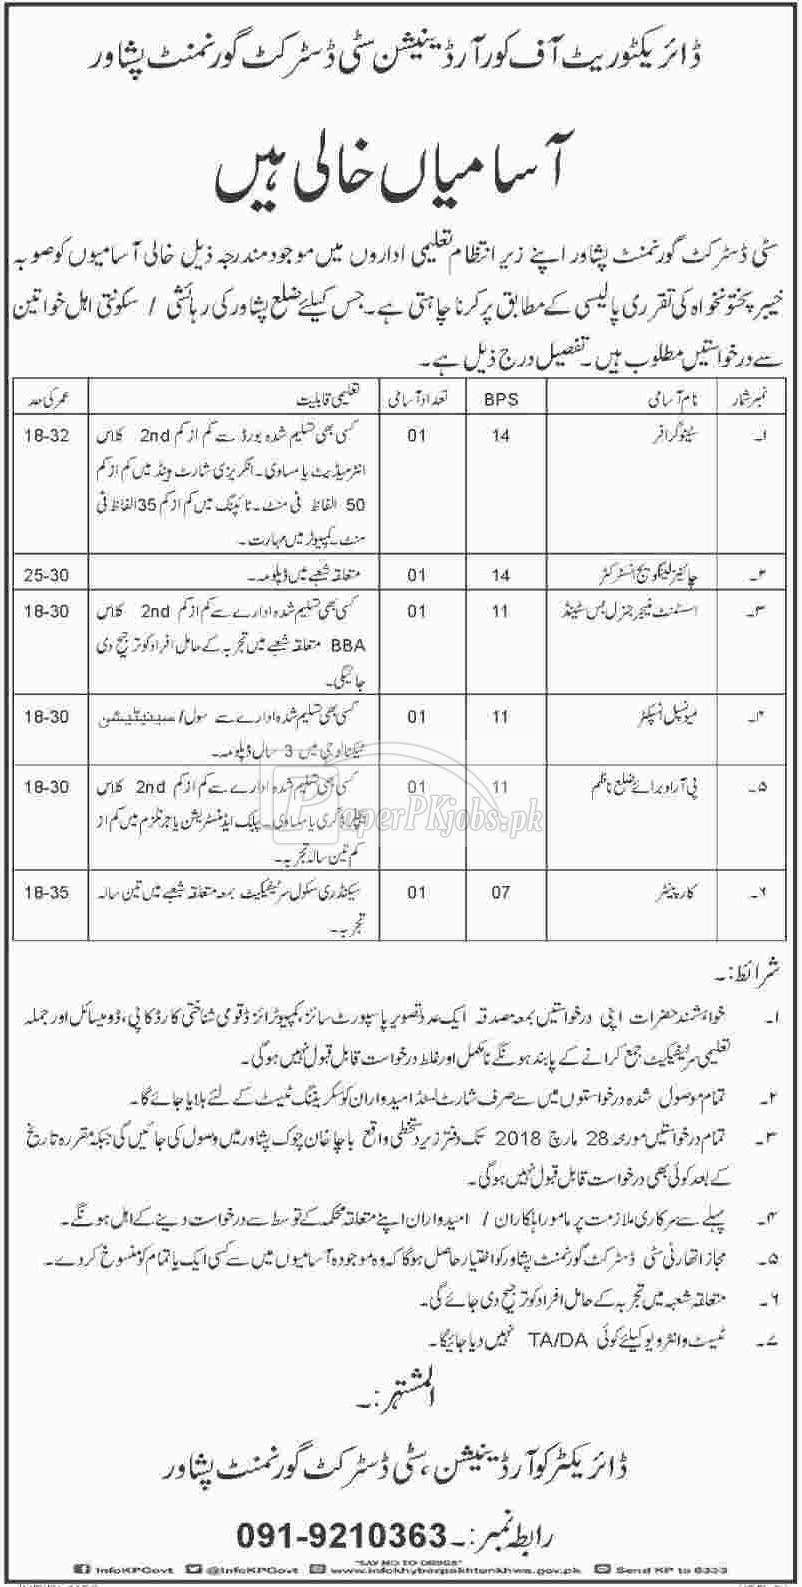 City District Government Peshawar Jobs 2018